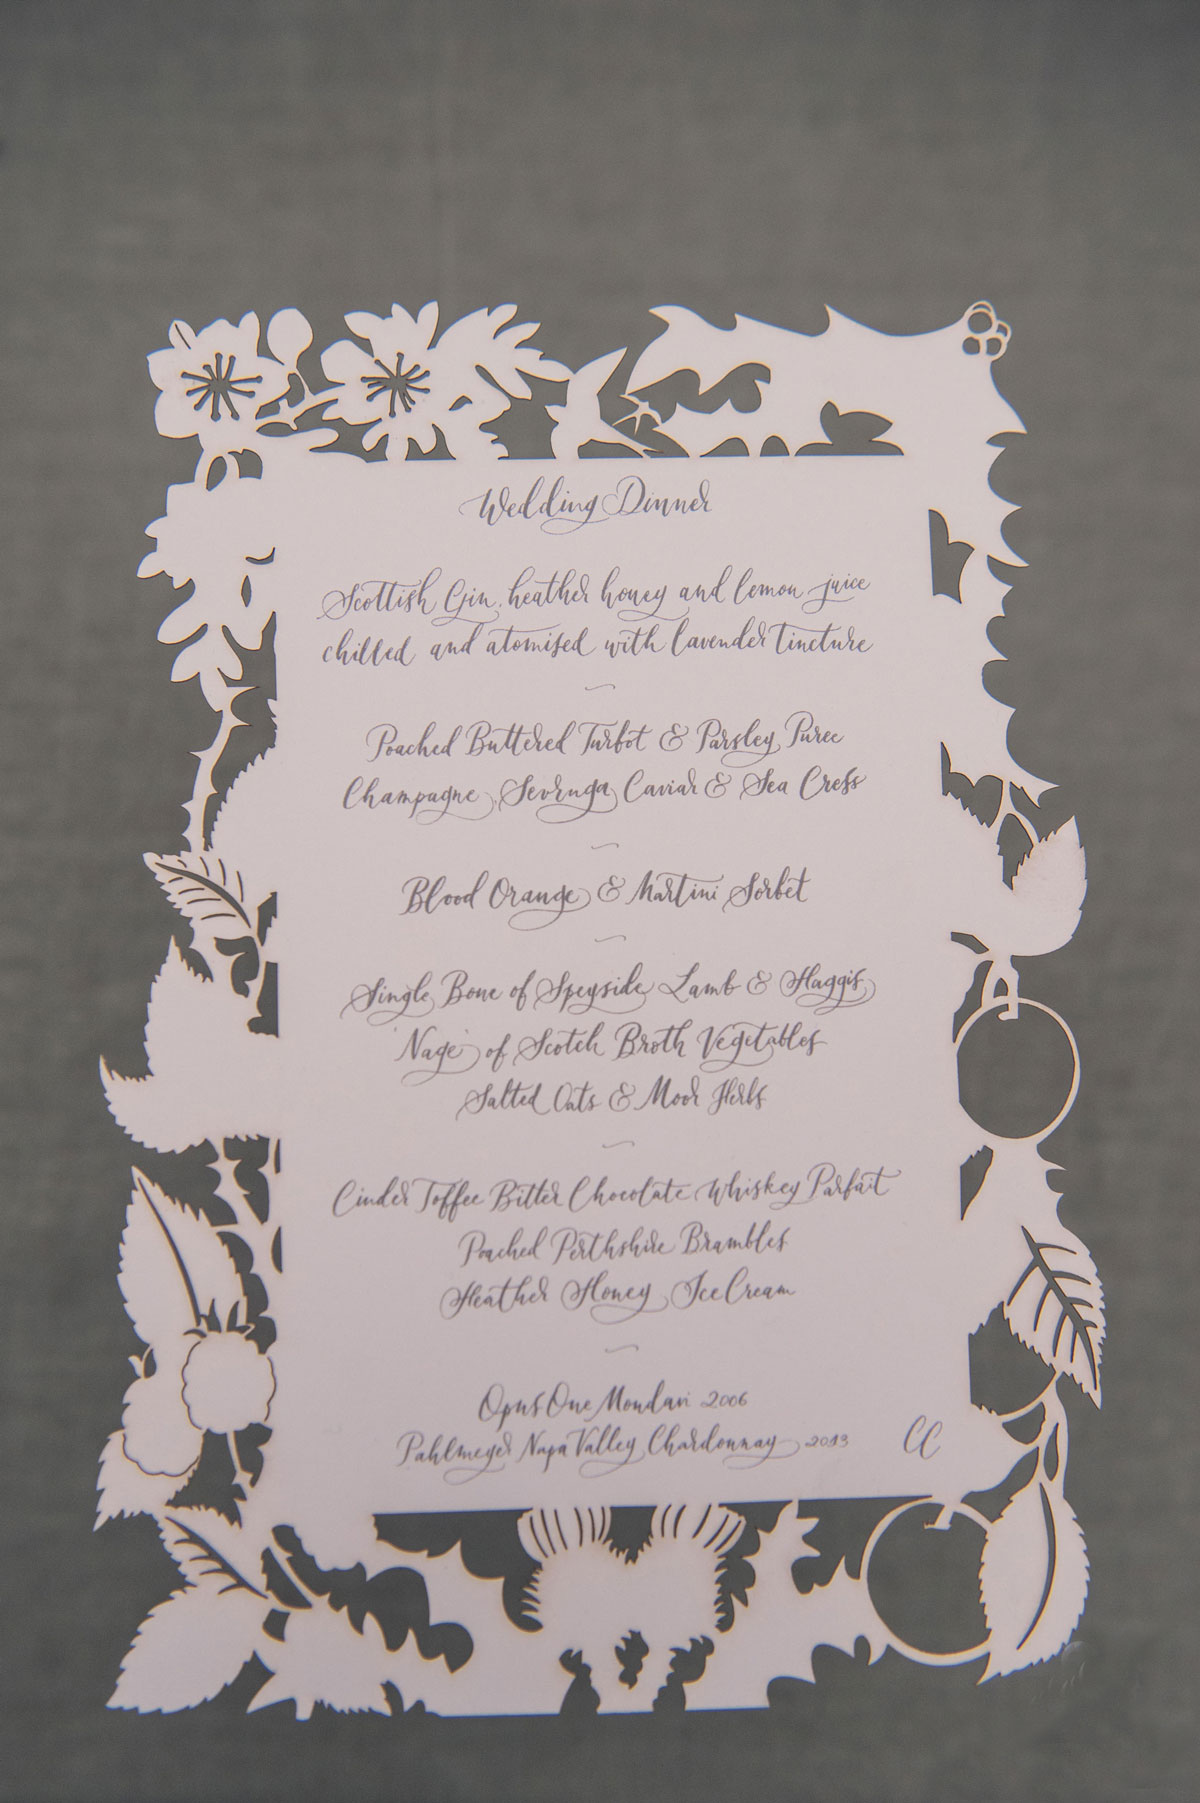 Scotland_Wedding_copyright_Carla-Ten-Eyck_for-Sarah-Haywood-Wedding-Design_1933-copy.jpg